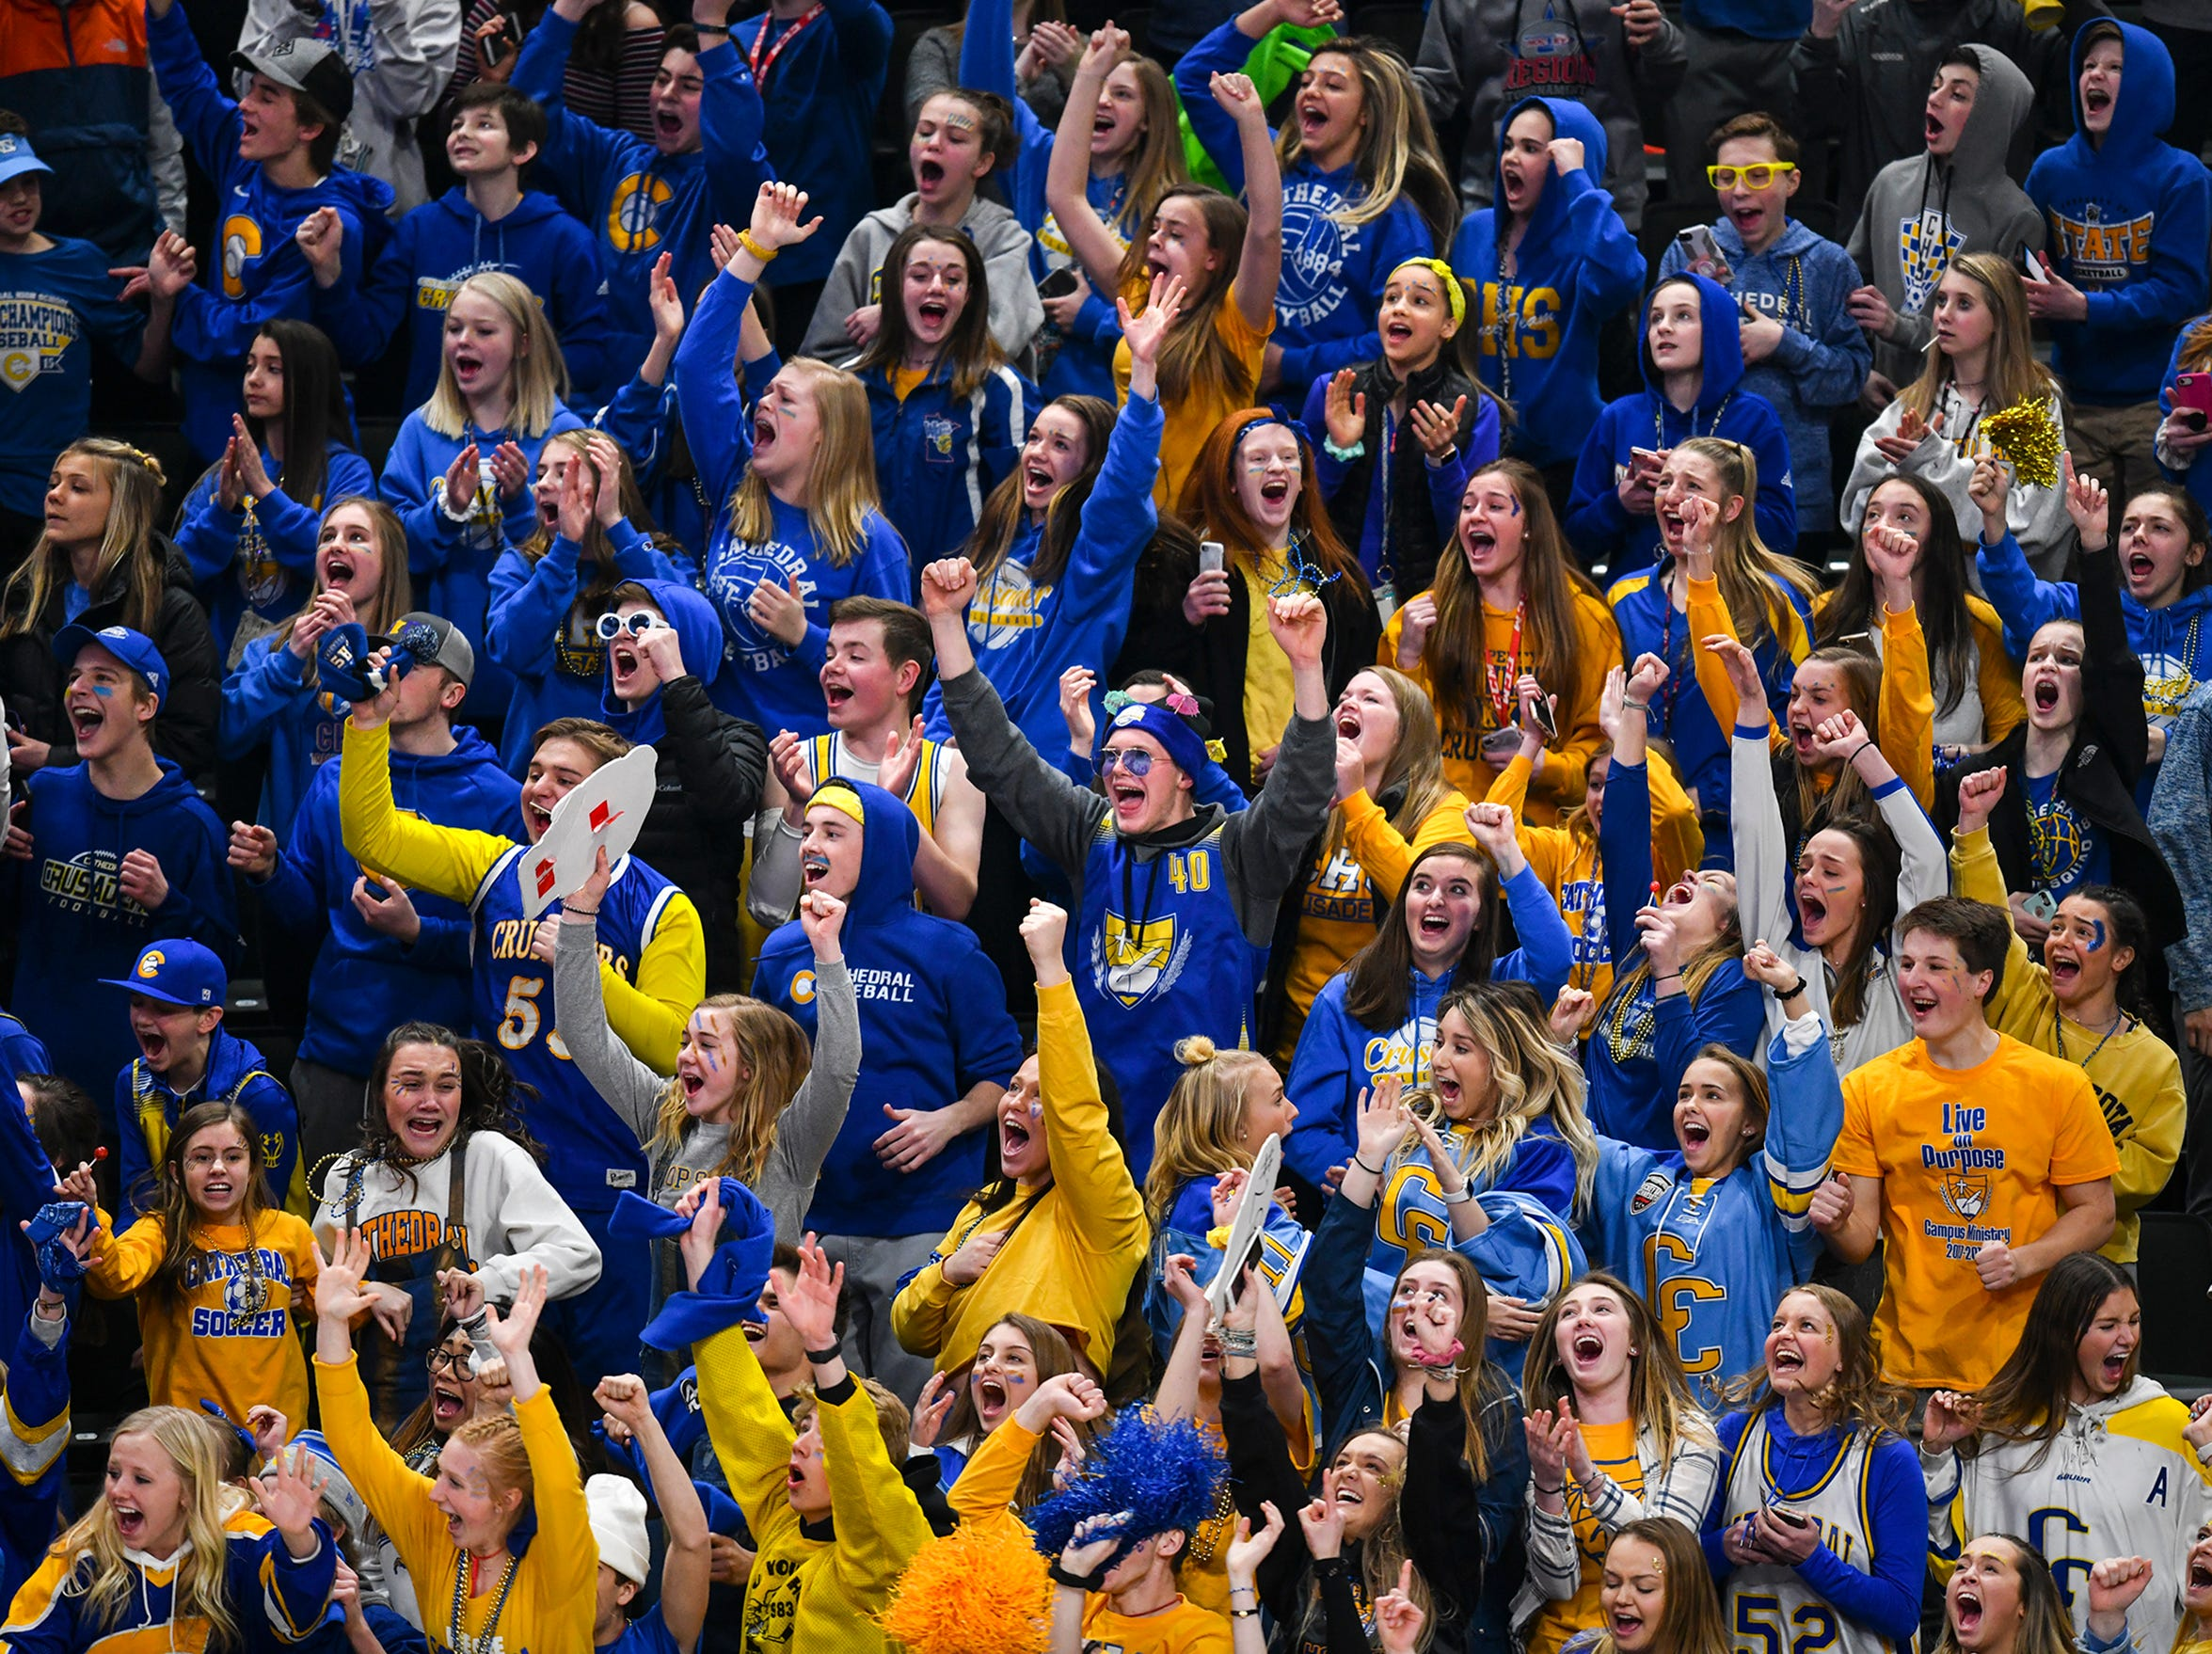 Cathedral fans cheer following a third quarter goal by their team during the state Class A championship game Saturday, March 9, 2019, at the Xcel Energy Center in St. Paul. Cathedral won the state championship with a 5-2 win against Greenway.